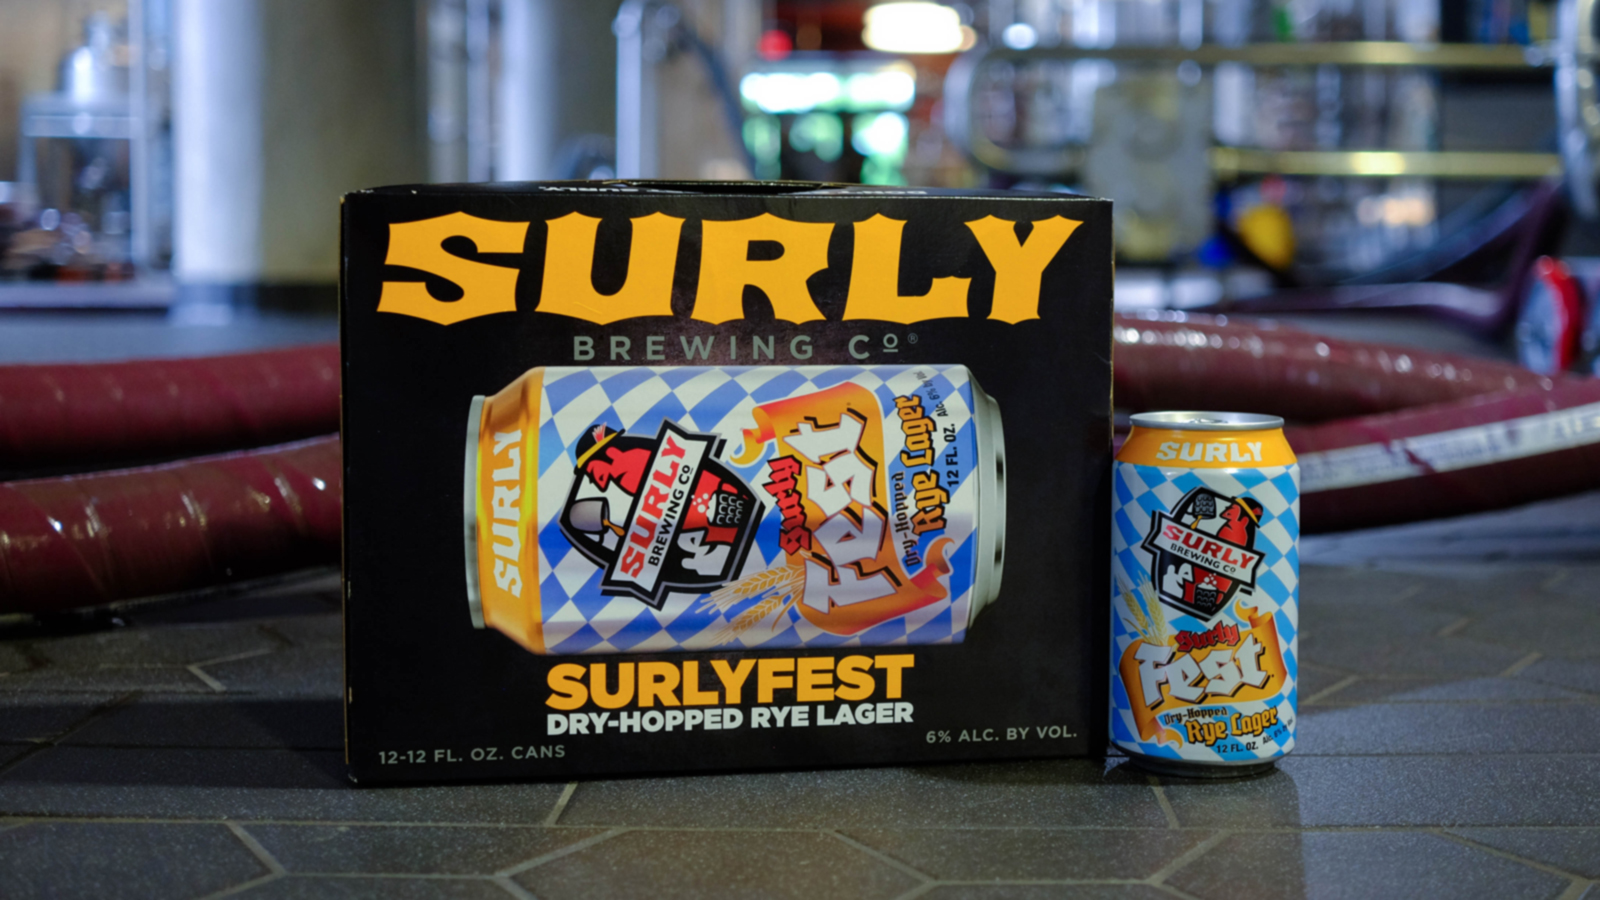 Surly Brewing Co. SurlyFest